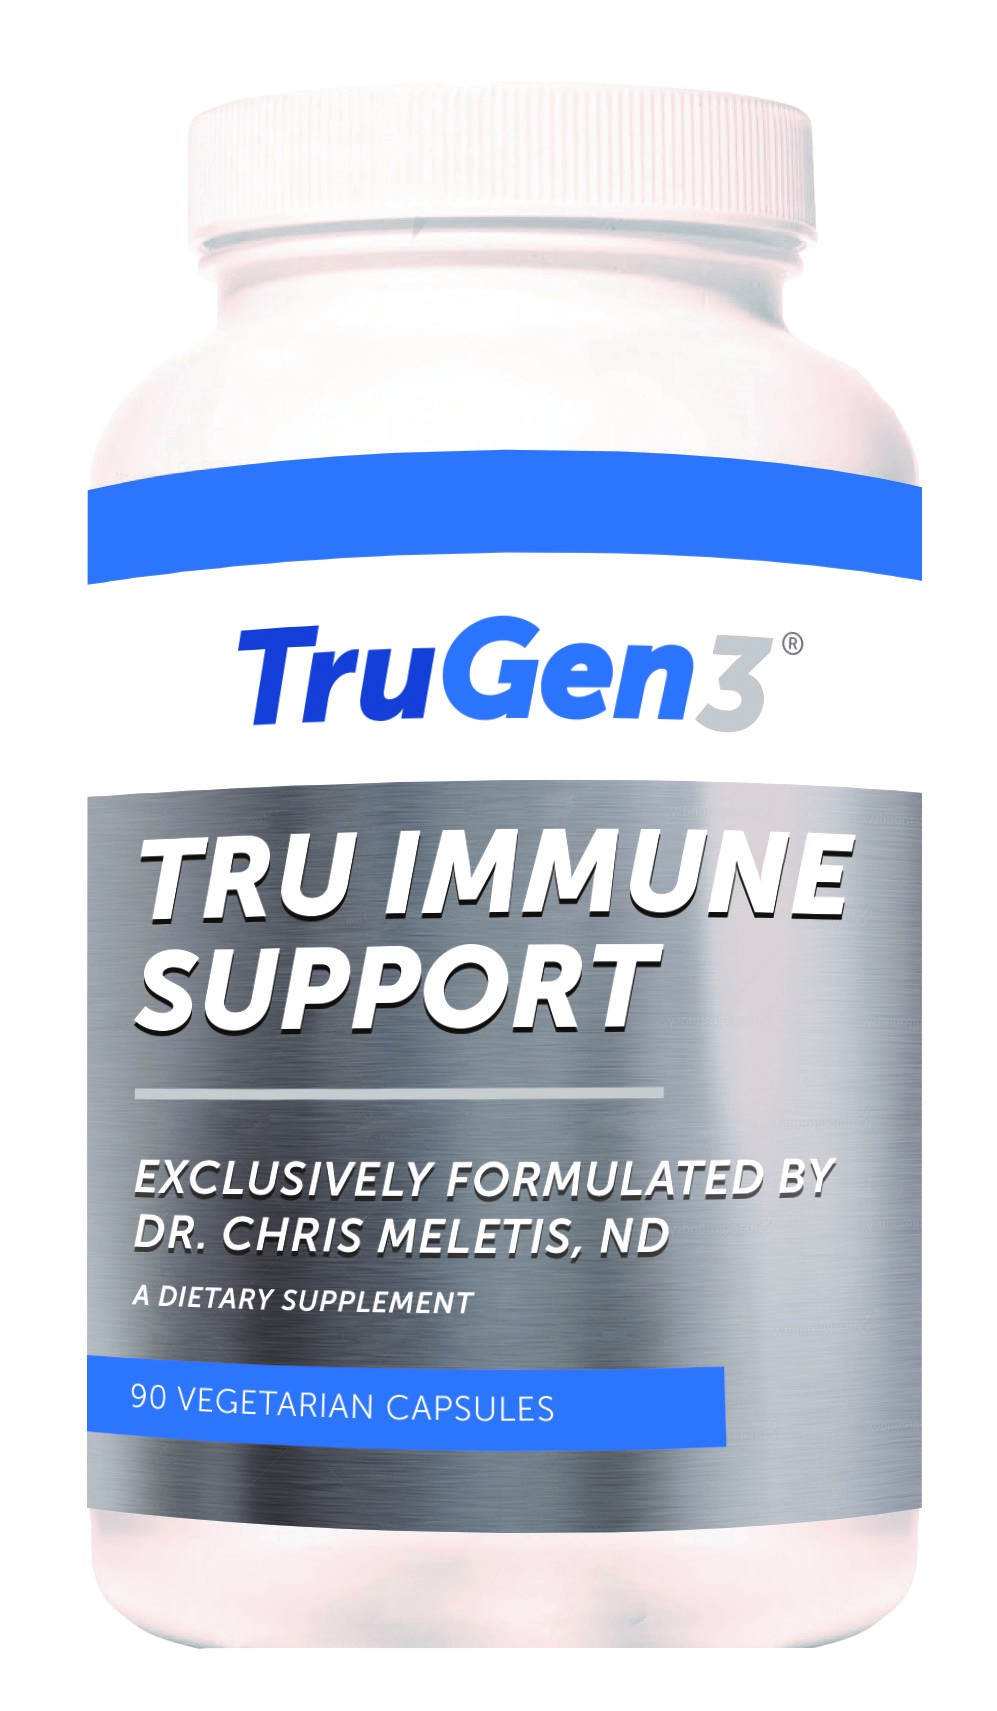 Tru Immune Support supplement bottle